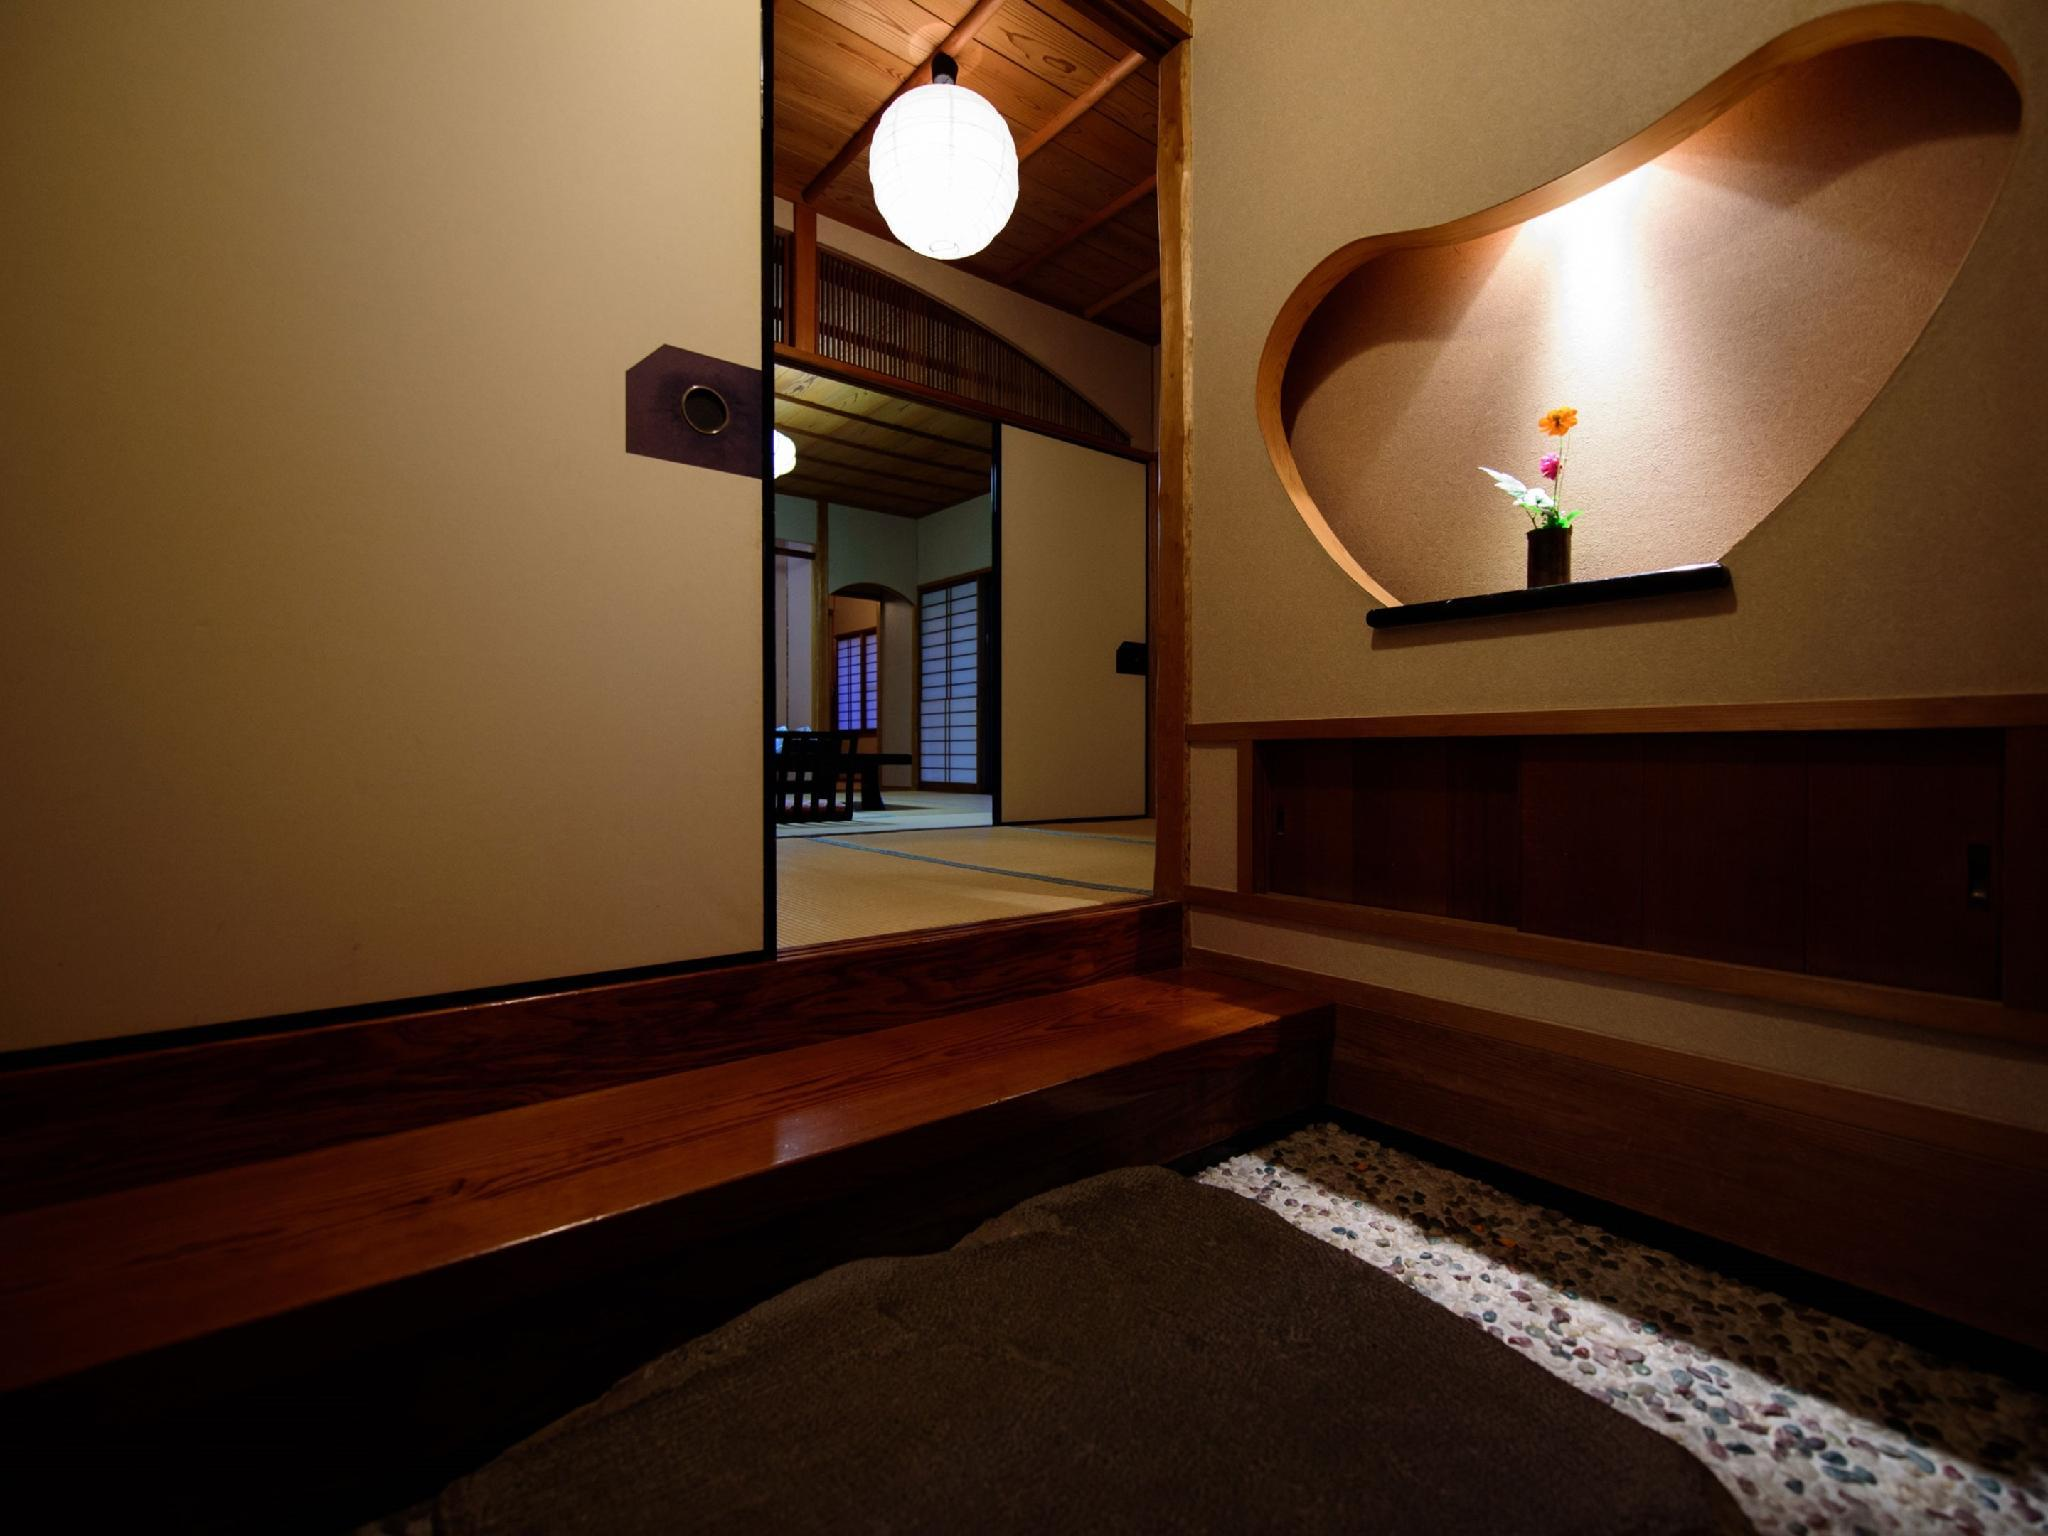 Agano 獨立房(和式房+檜木風呂) (Detached Japanese-style Room with Cypress Bath (Agano Type))